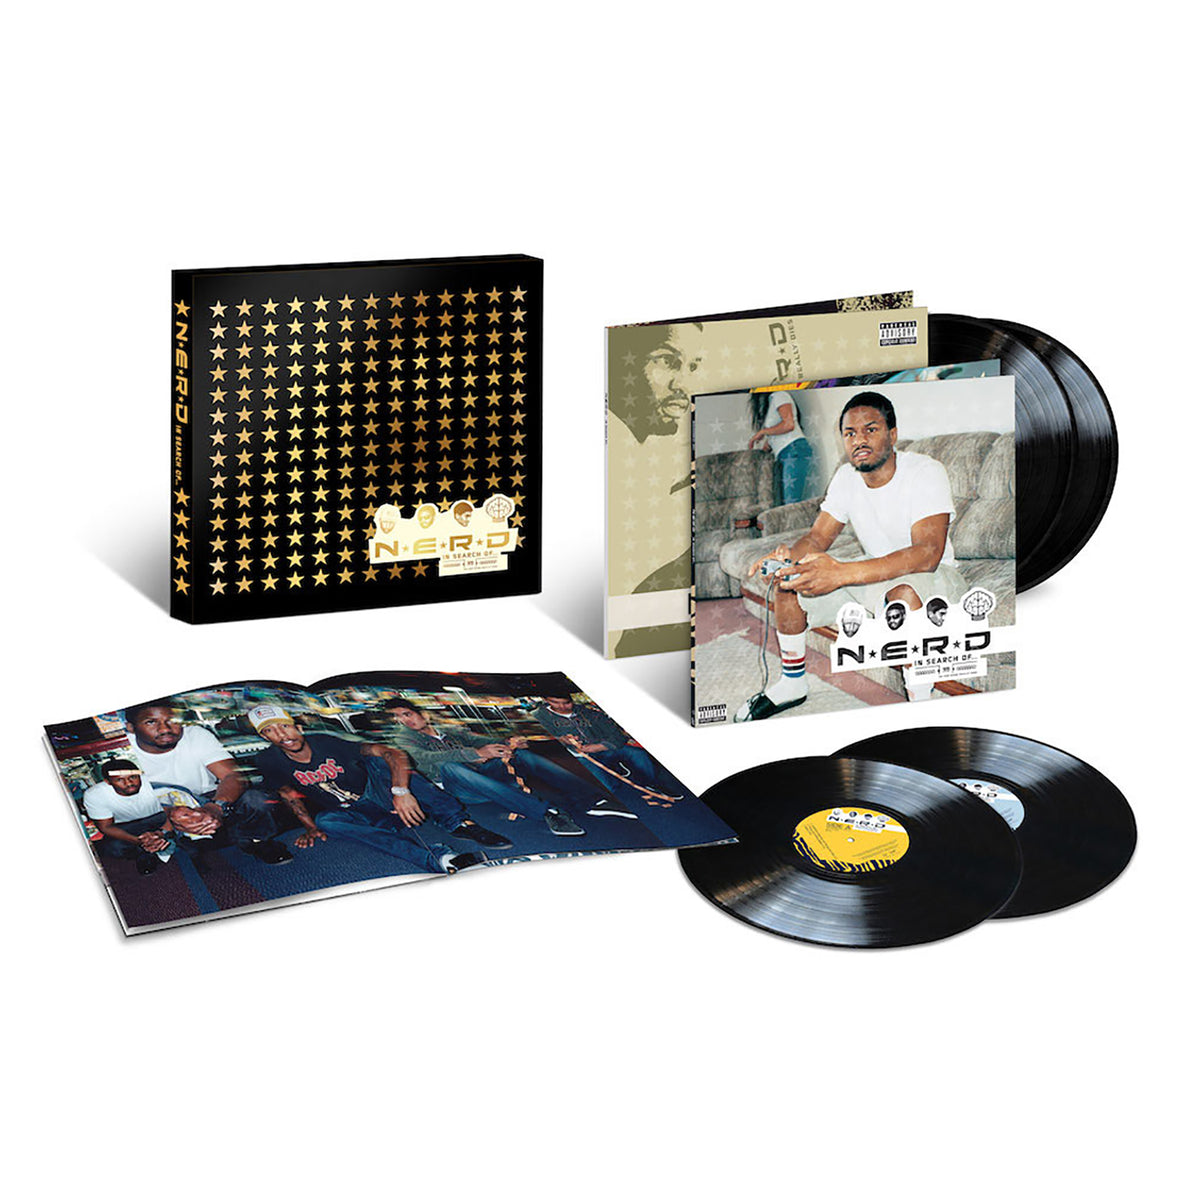 N.E.R.D.: In Search Of... Vinyl 4LP Boxset